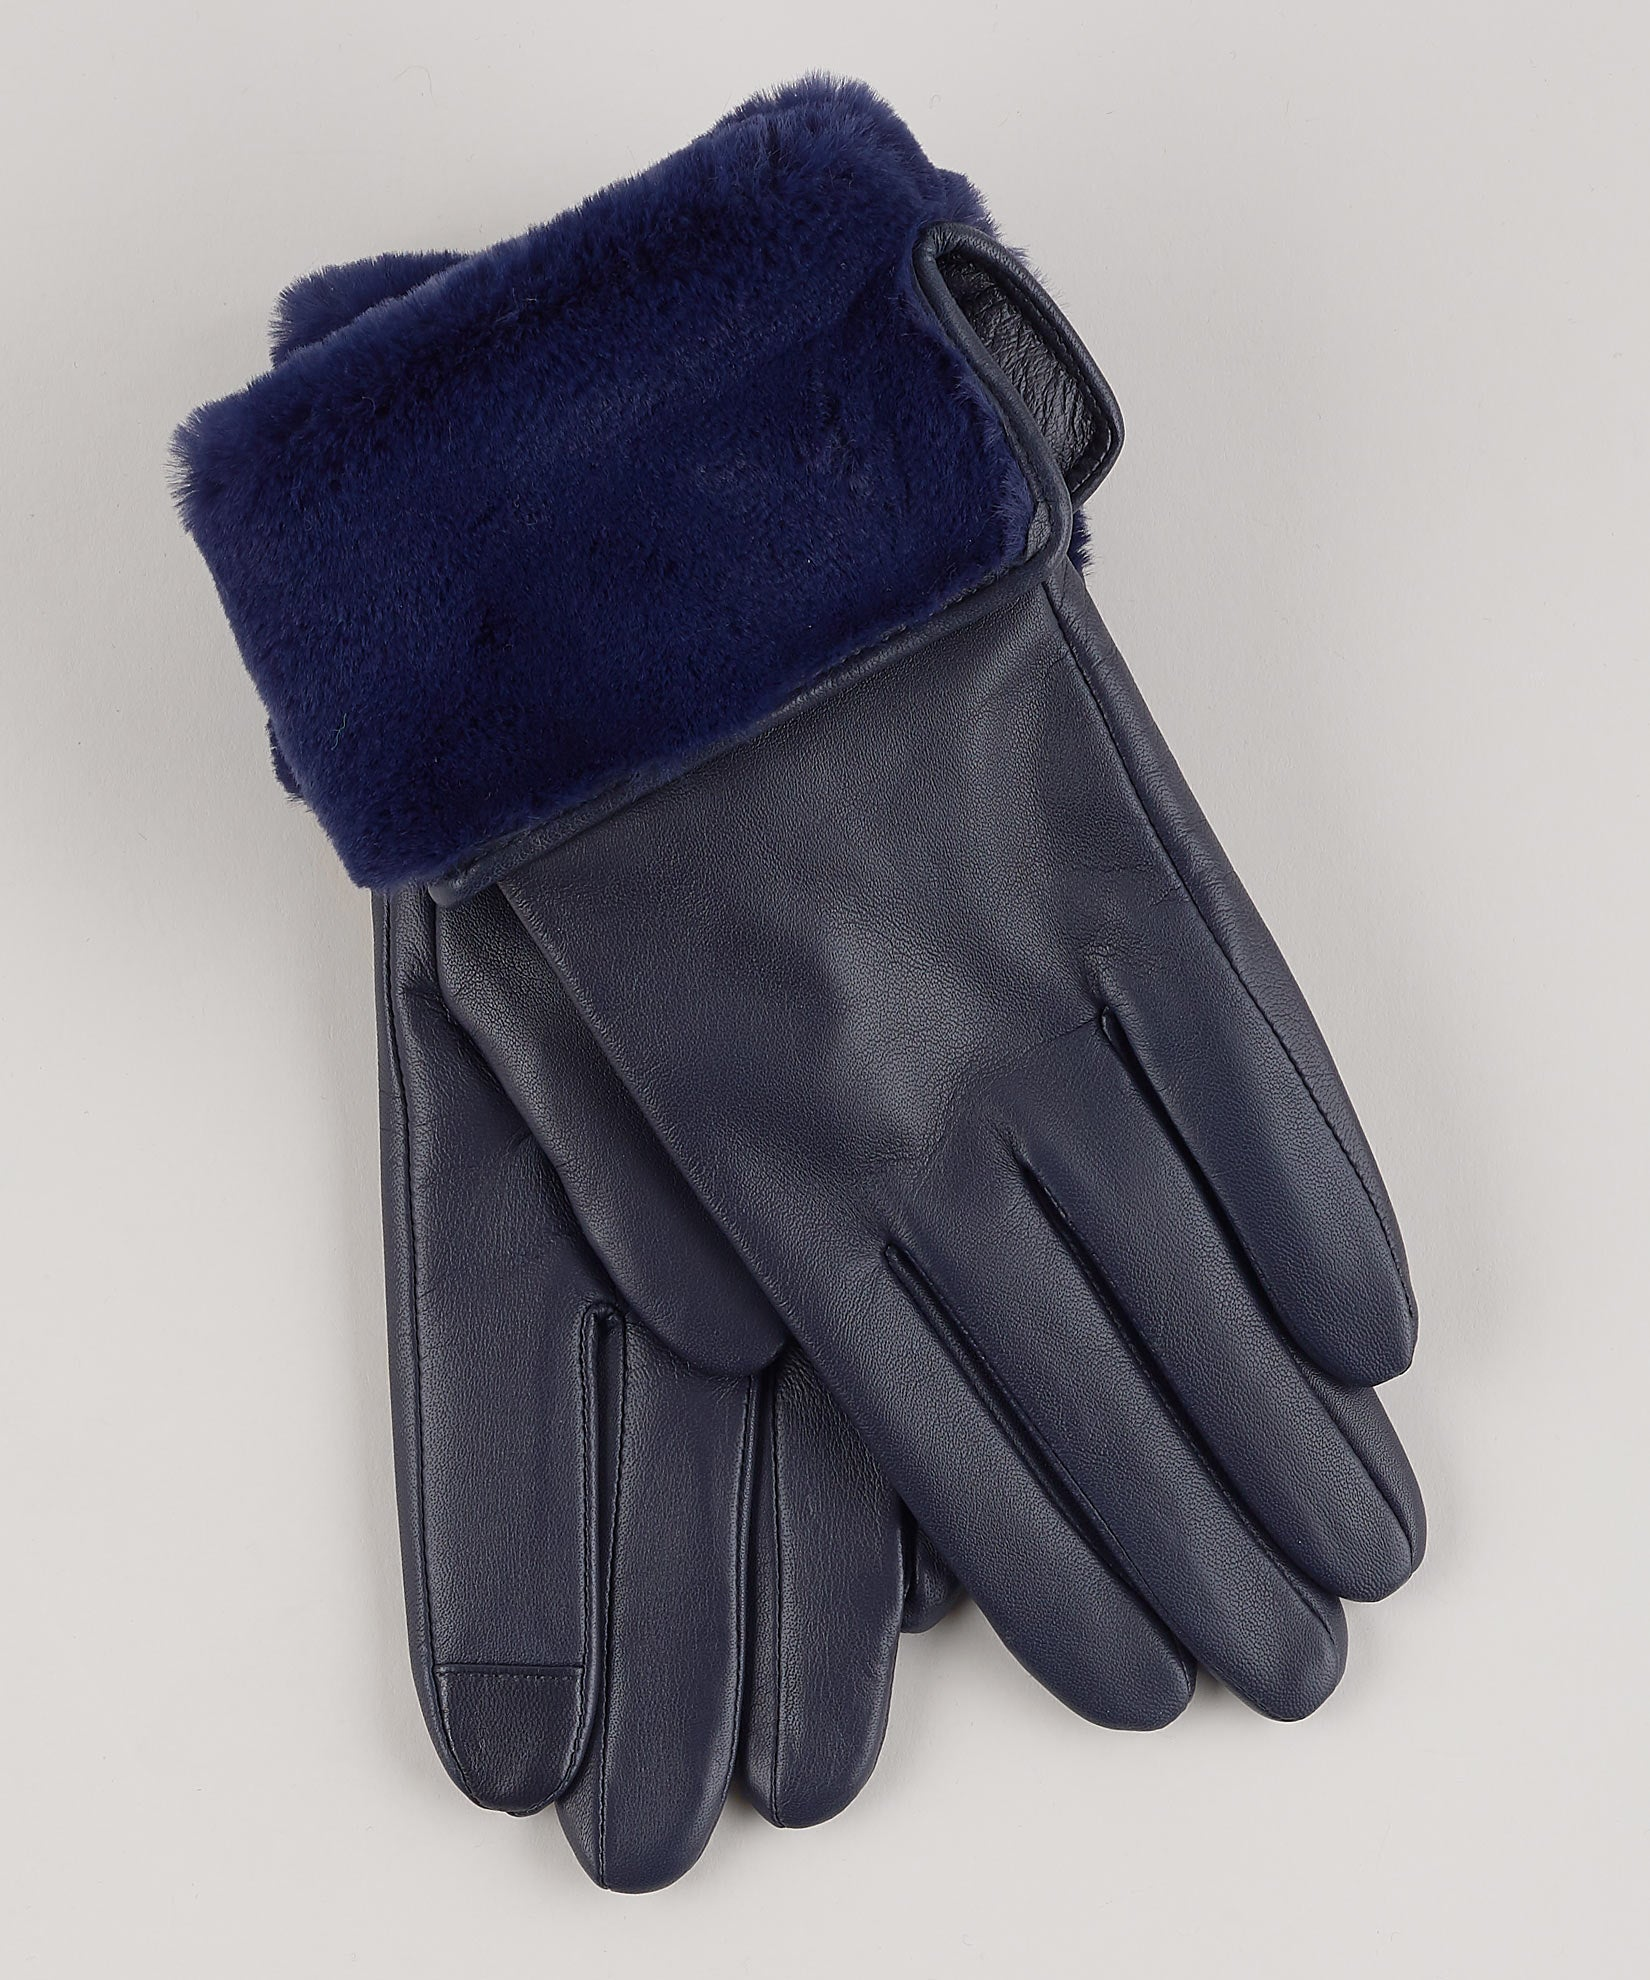 Navy - Faux Fur Cuff Glove